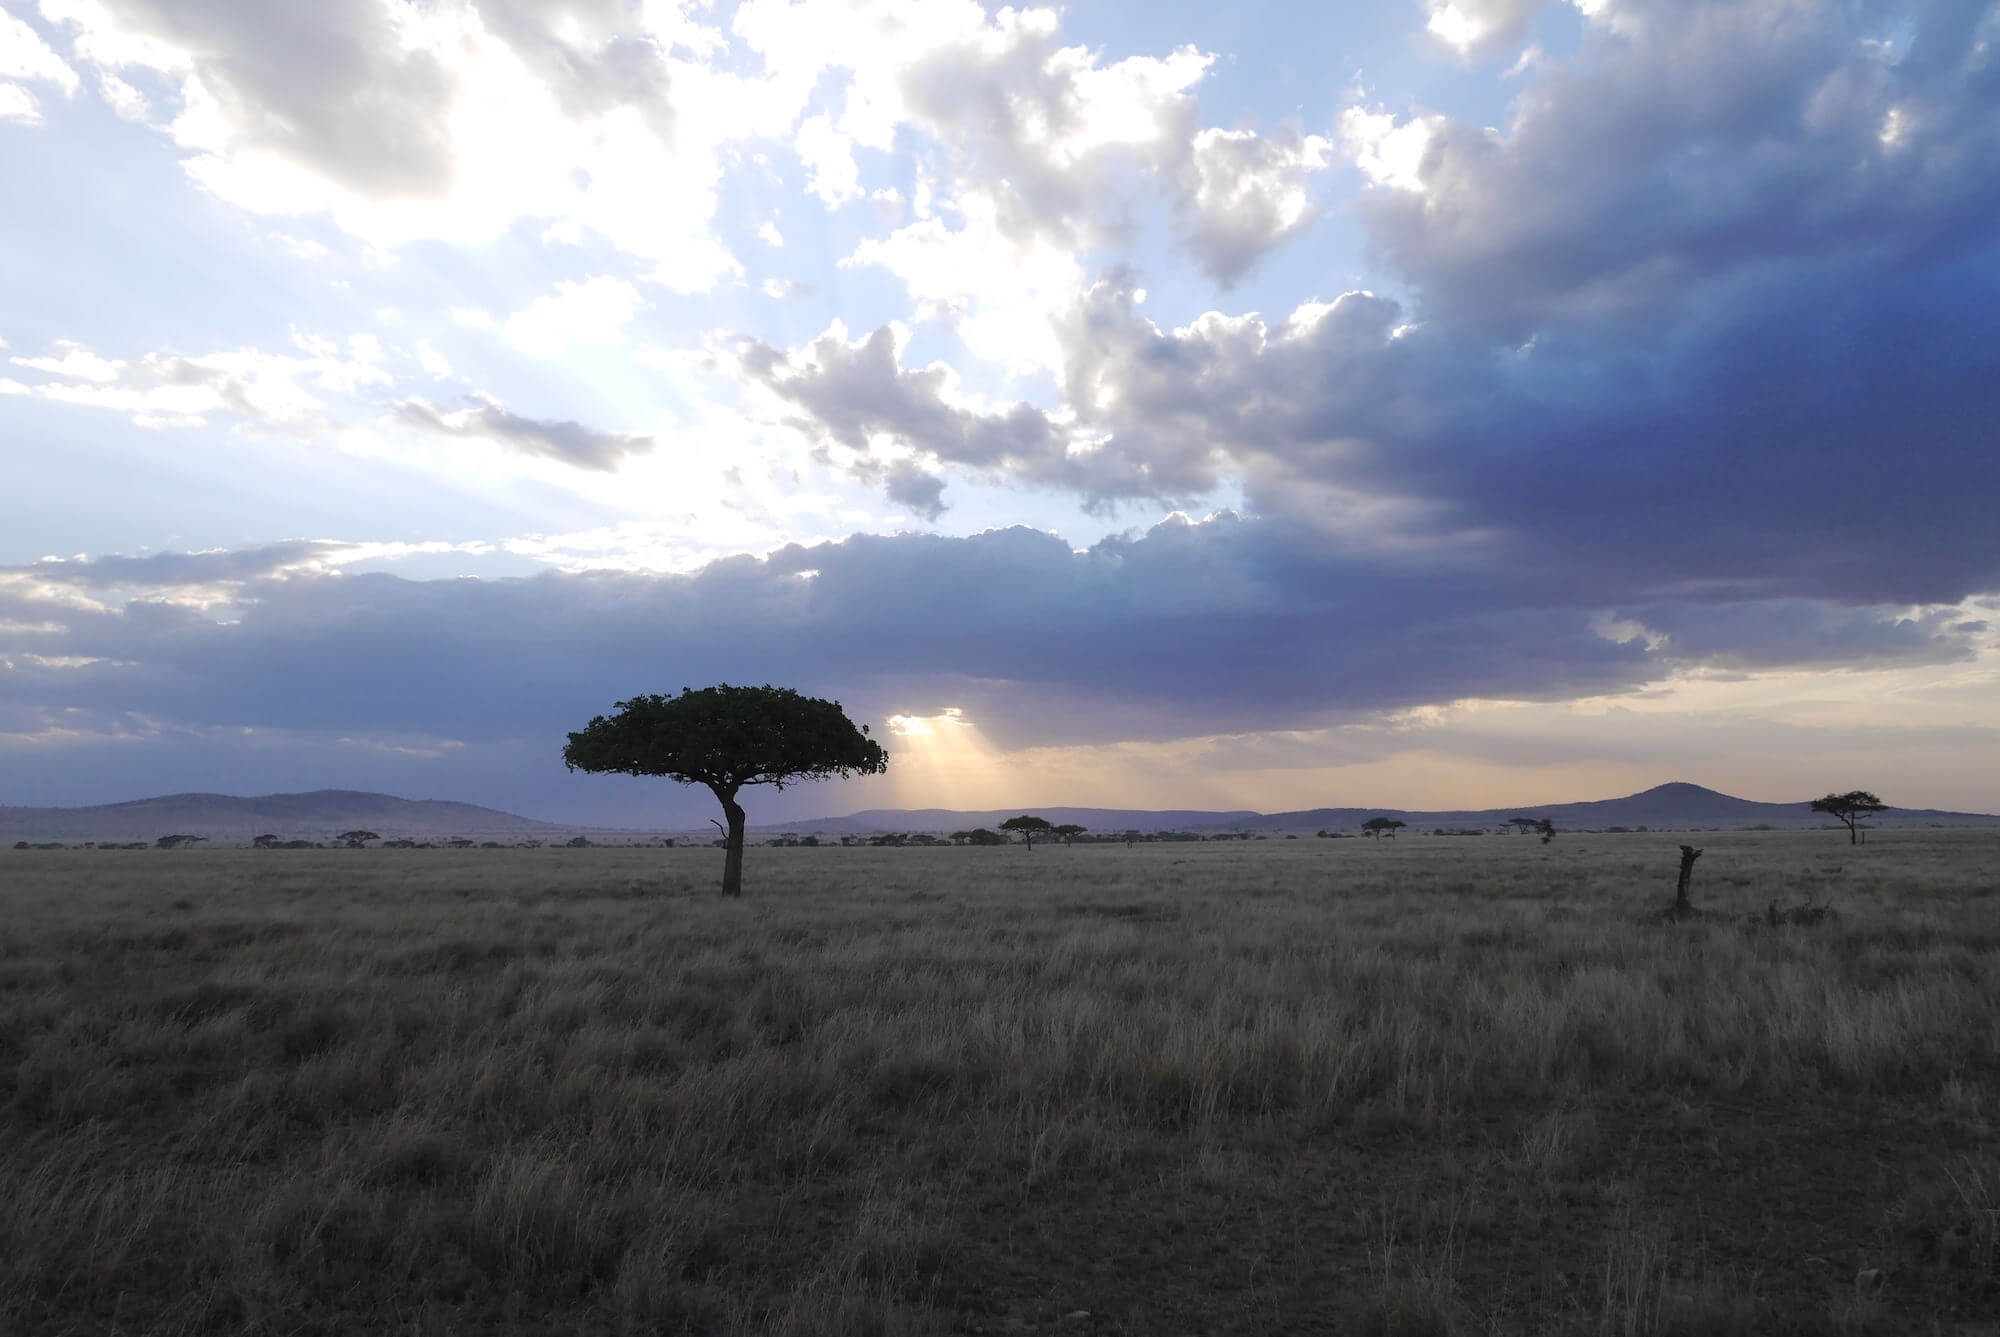 Serengeti sunset, serengeti safari